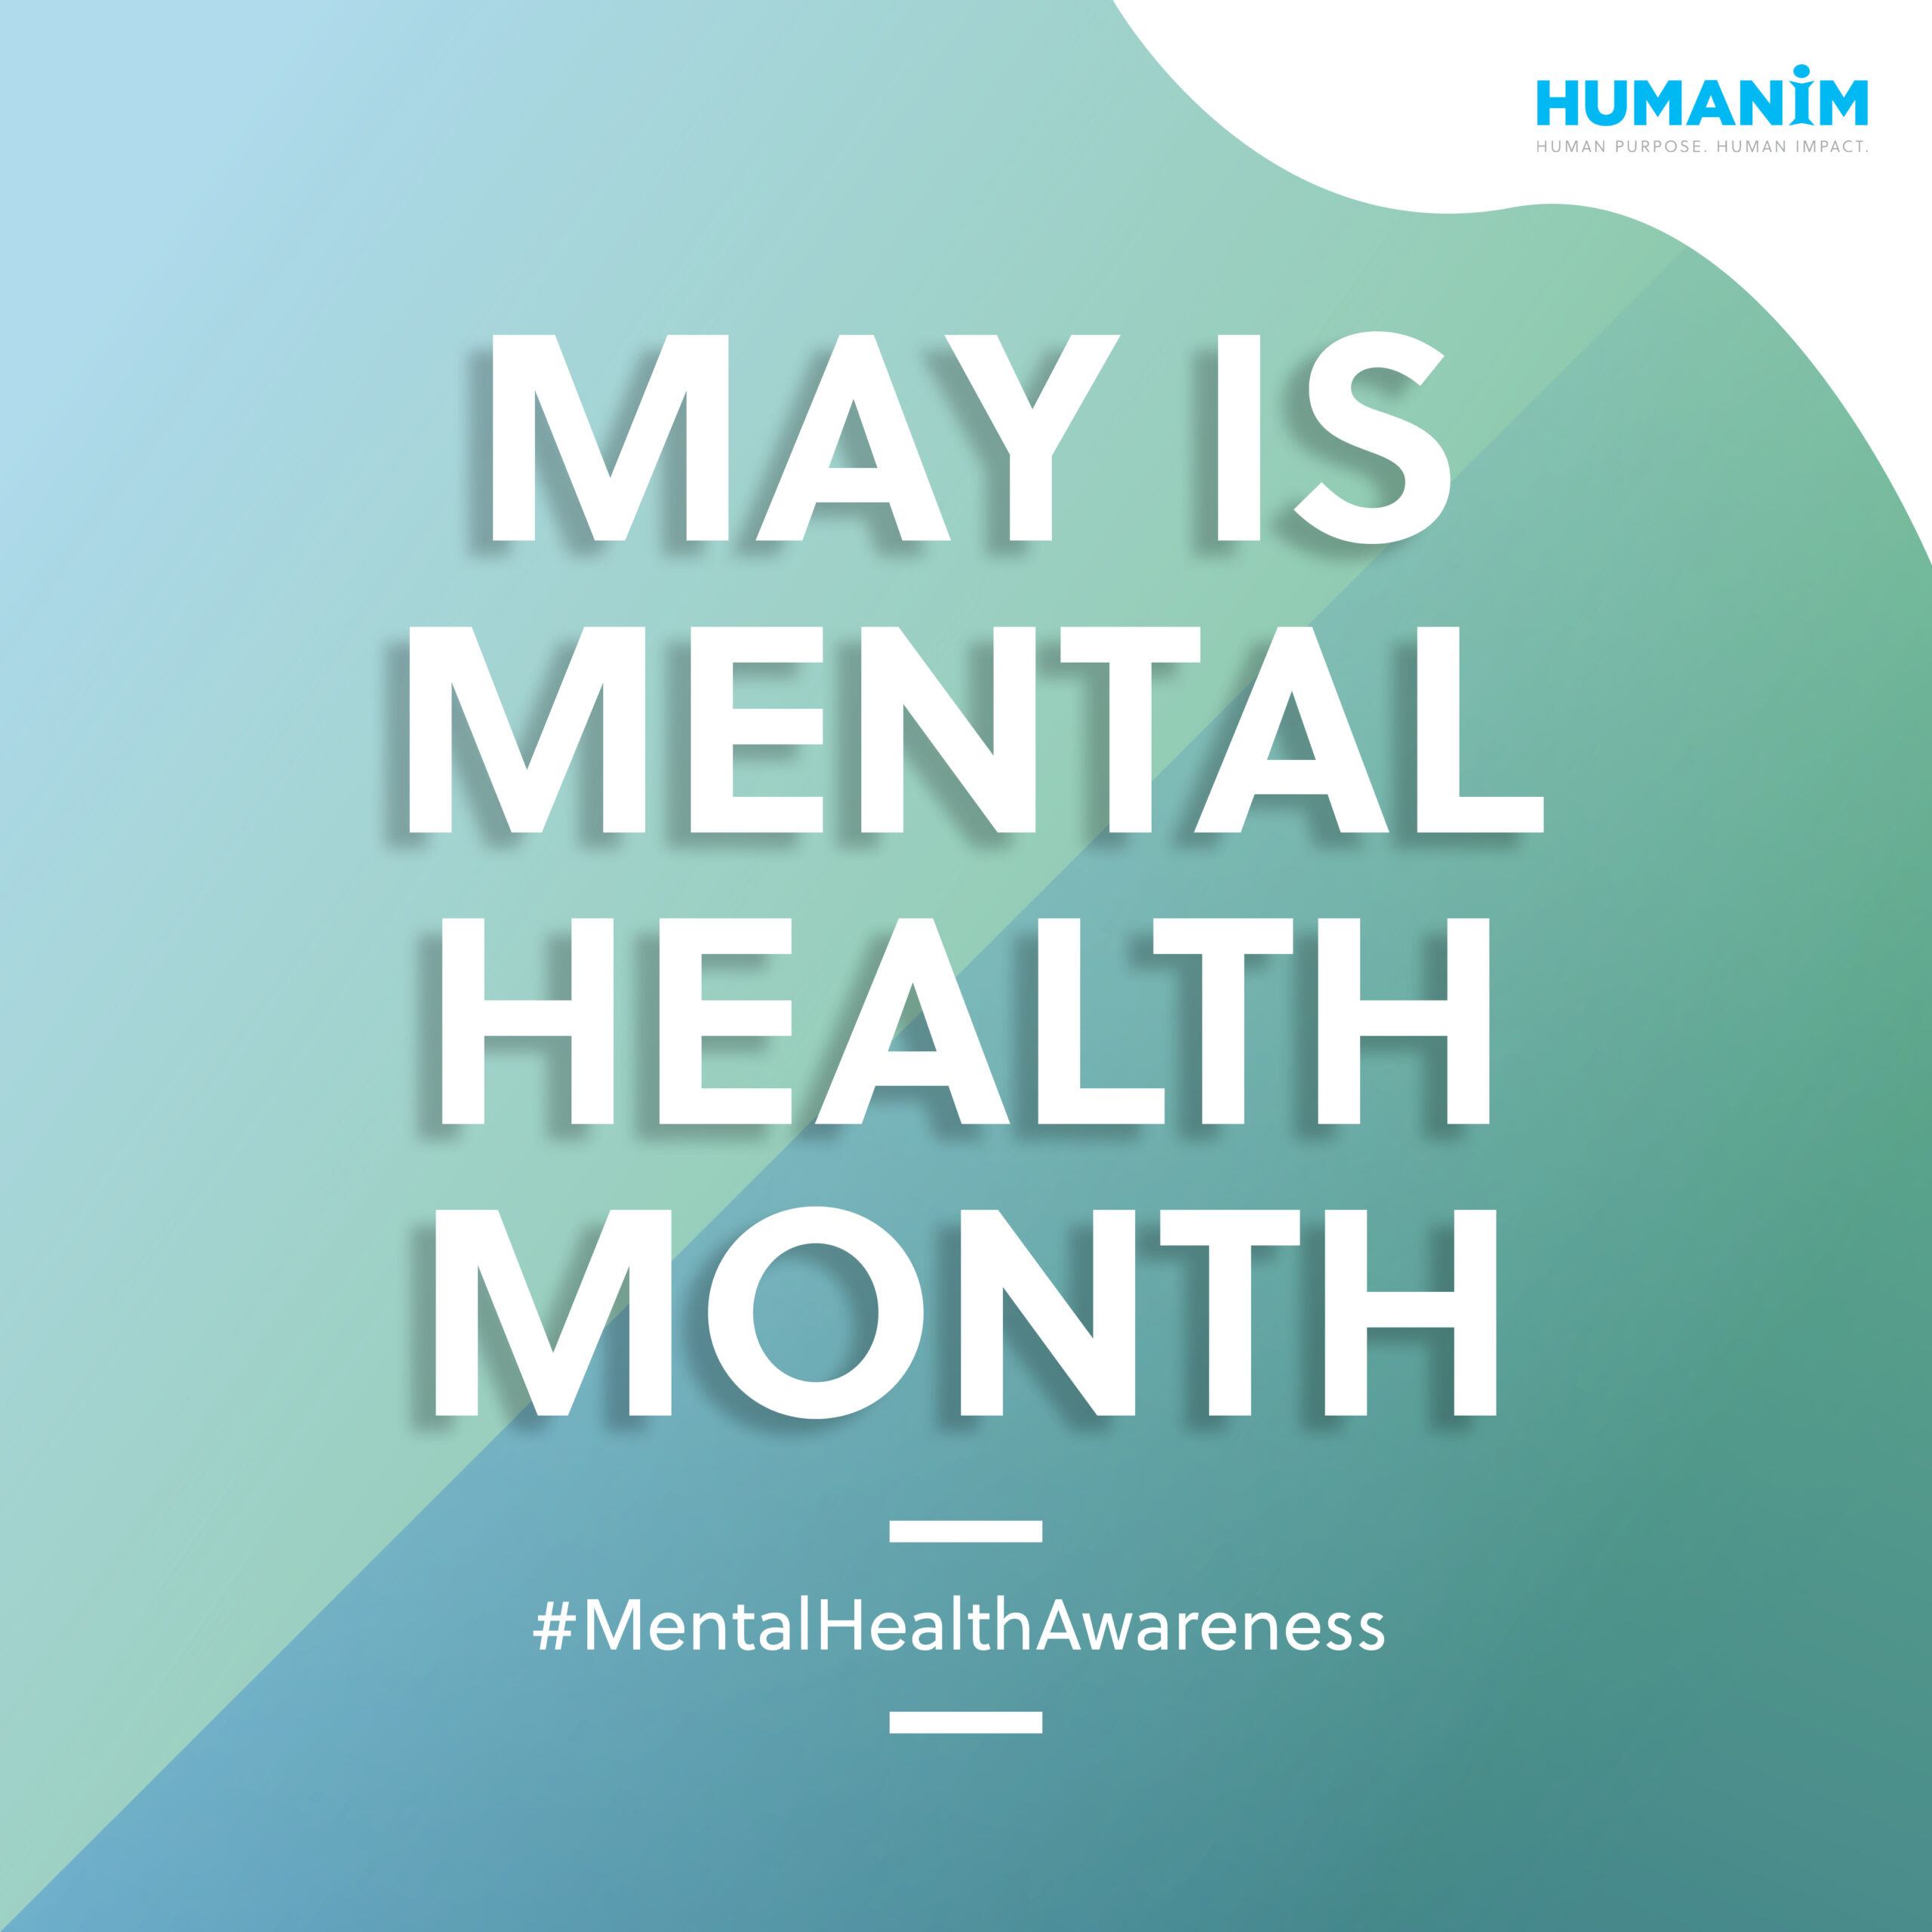 May is Mental Health Month 2021